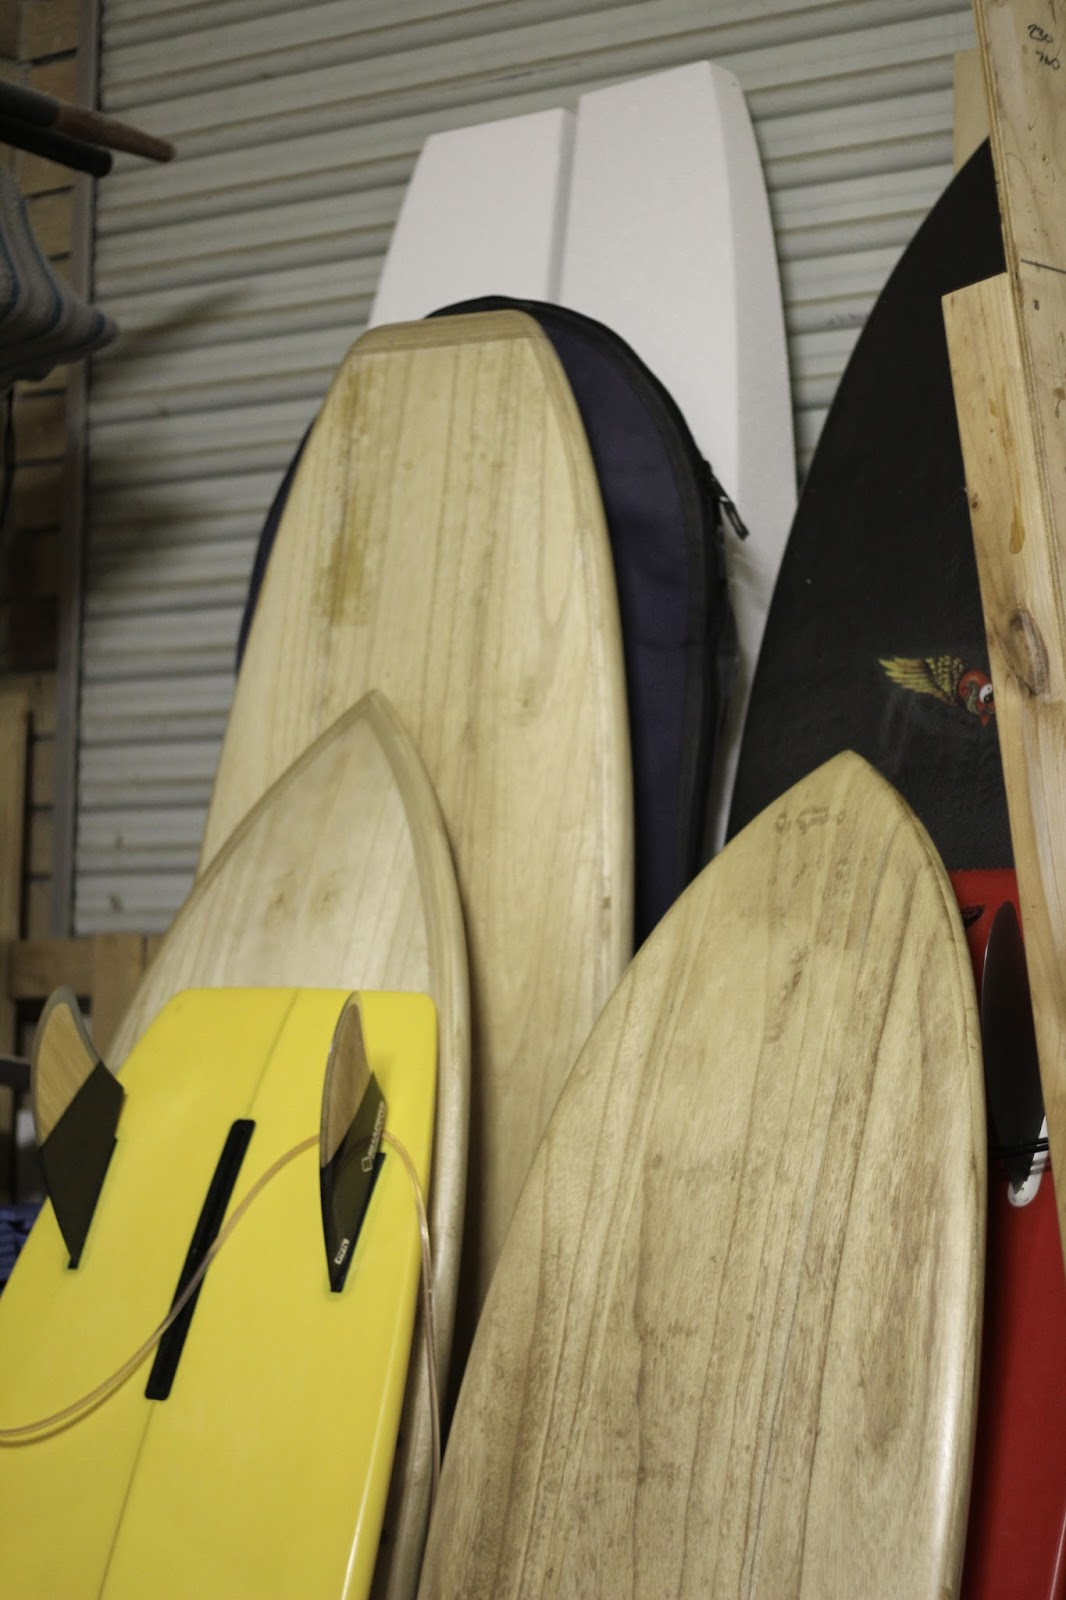 20-03-2016-australia-siebert-surfboards-07